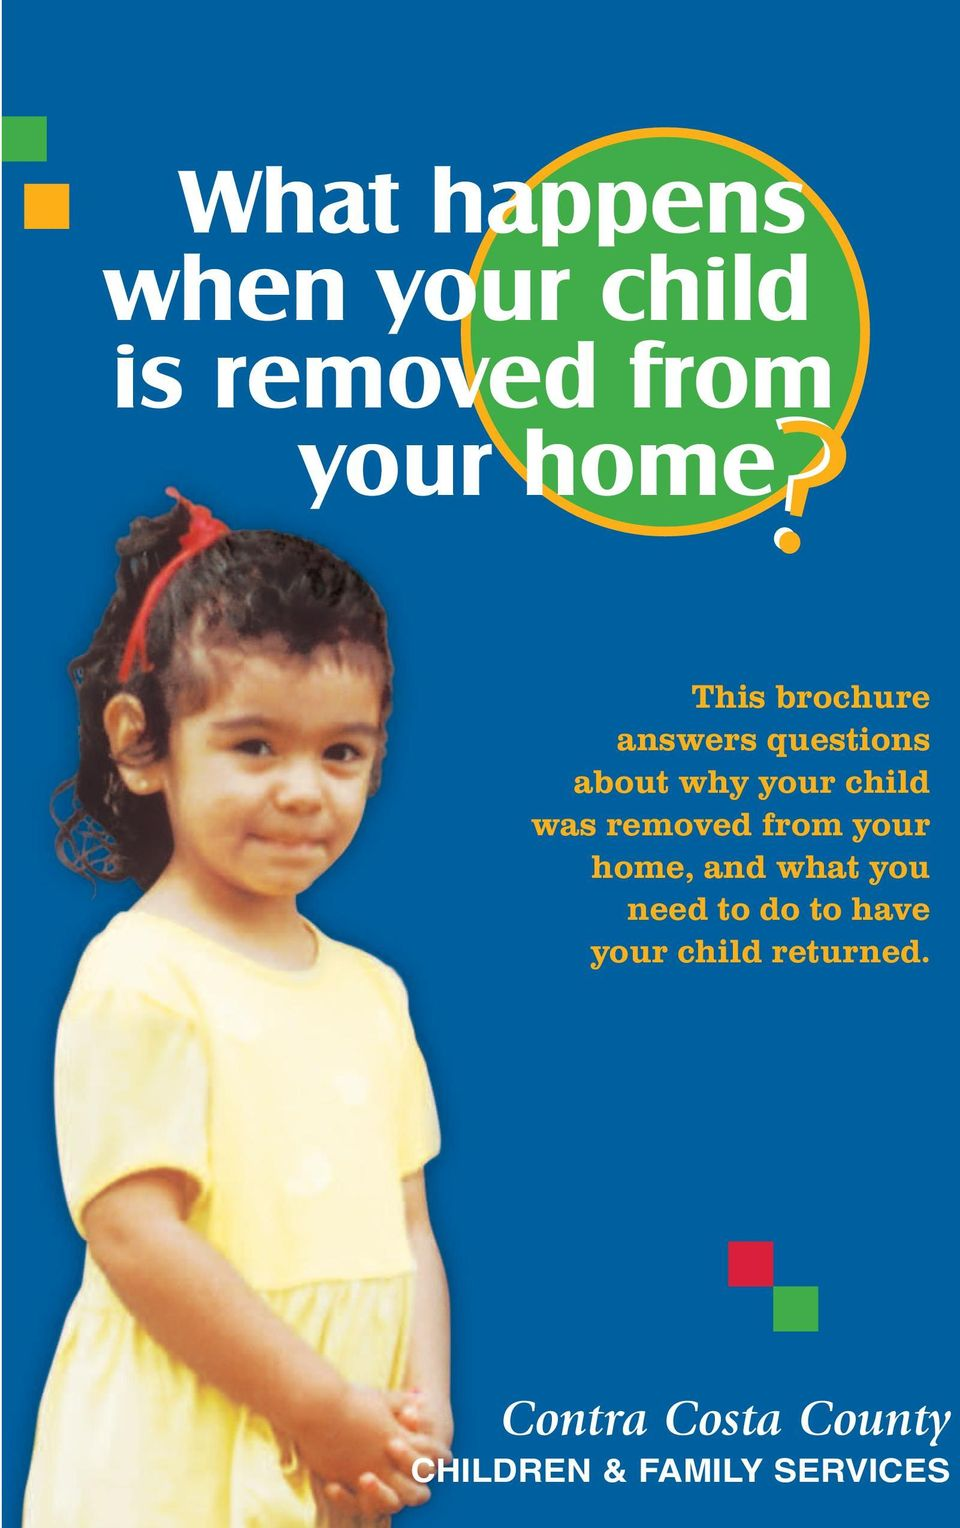 removed from your home, and what you need to do to have